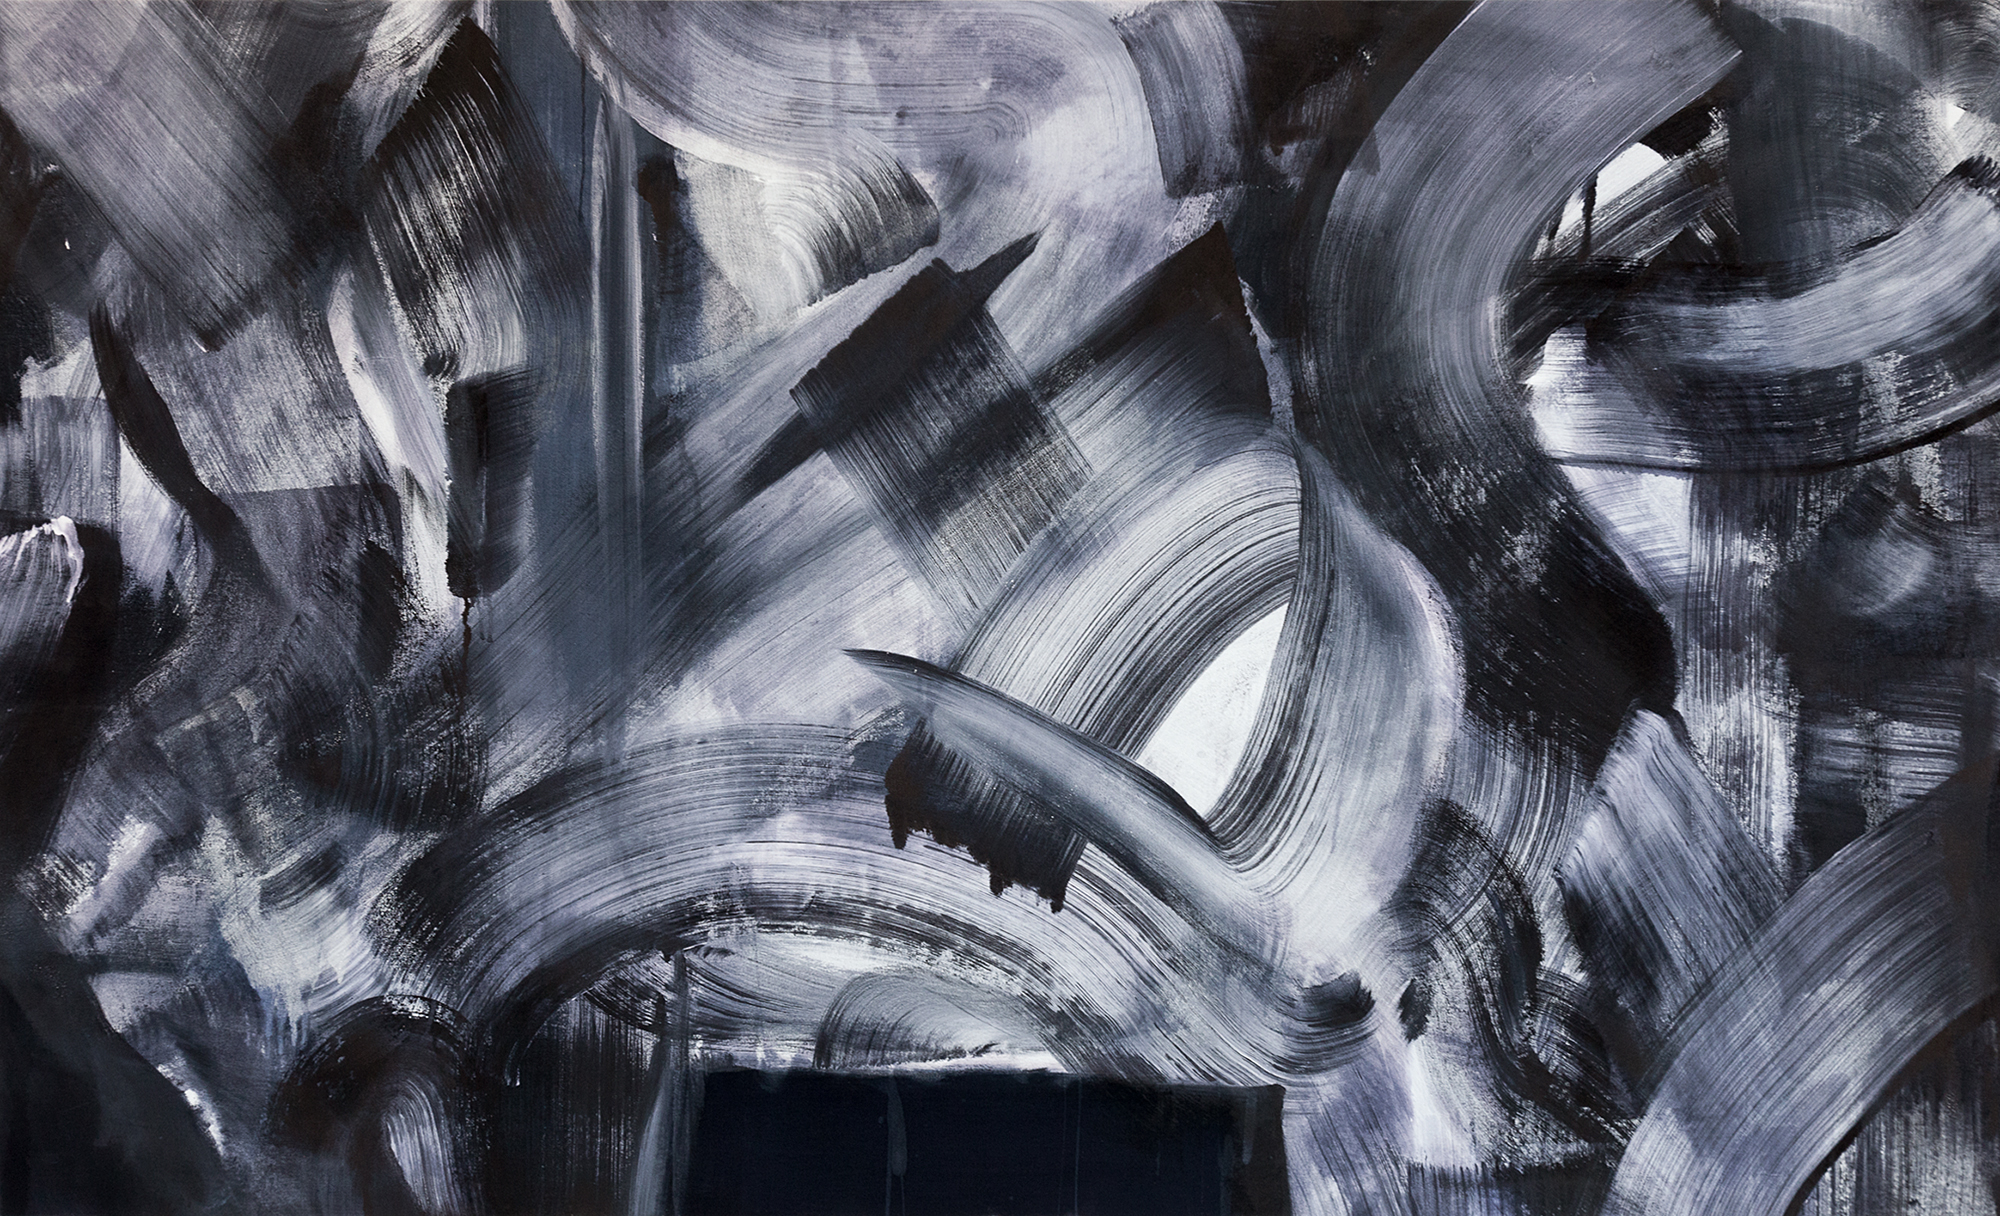 Max Martyns,  Ink 81, 2016, ink and house paint on canvas 200x120cm.  Image source: Max Martyns